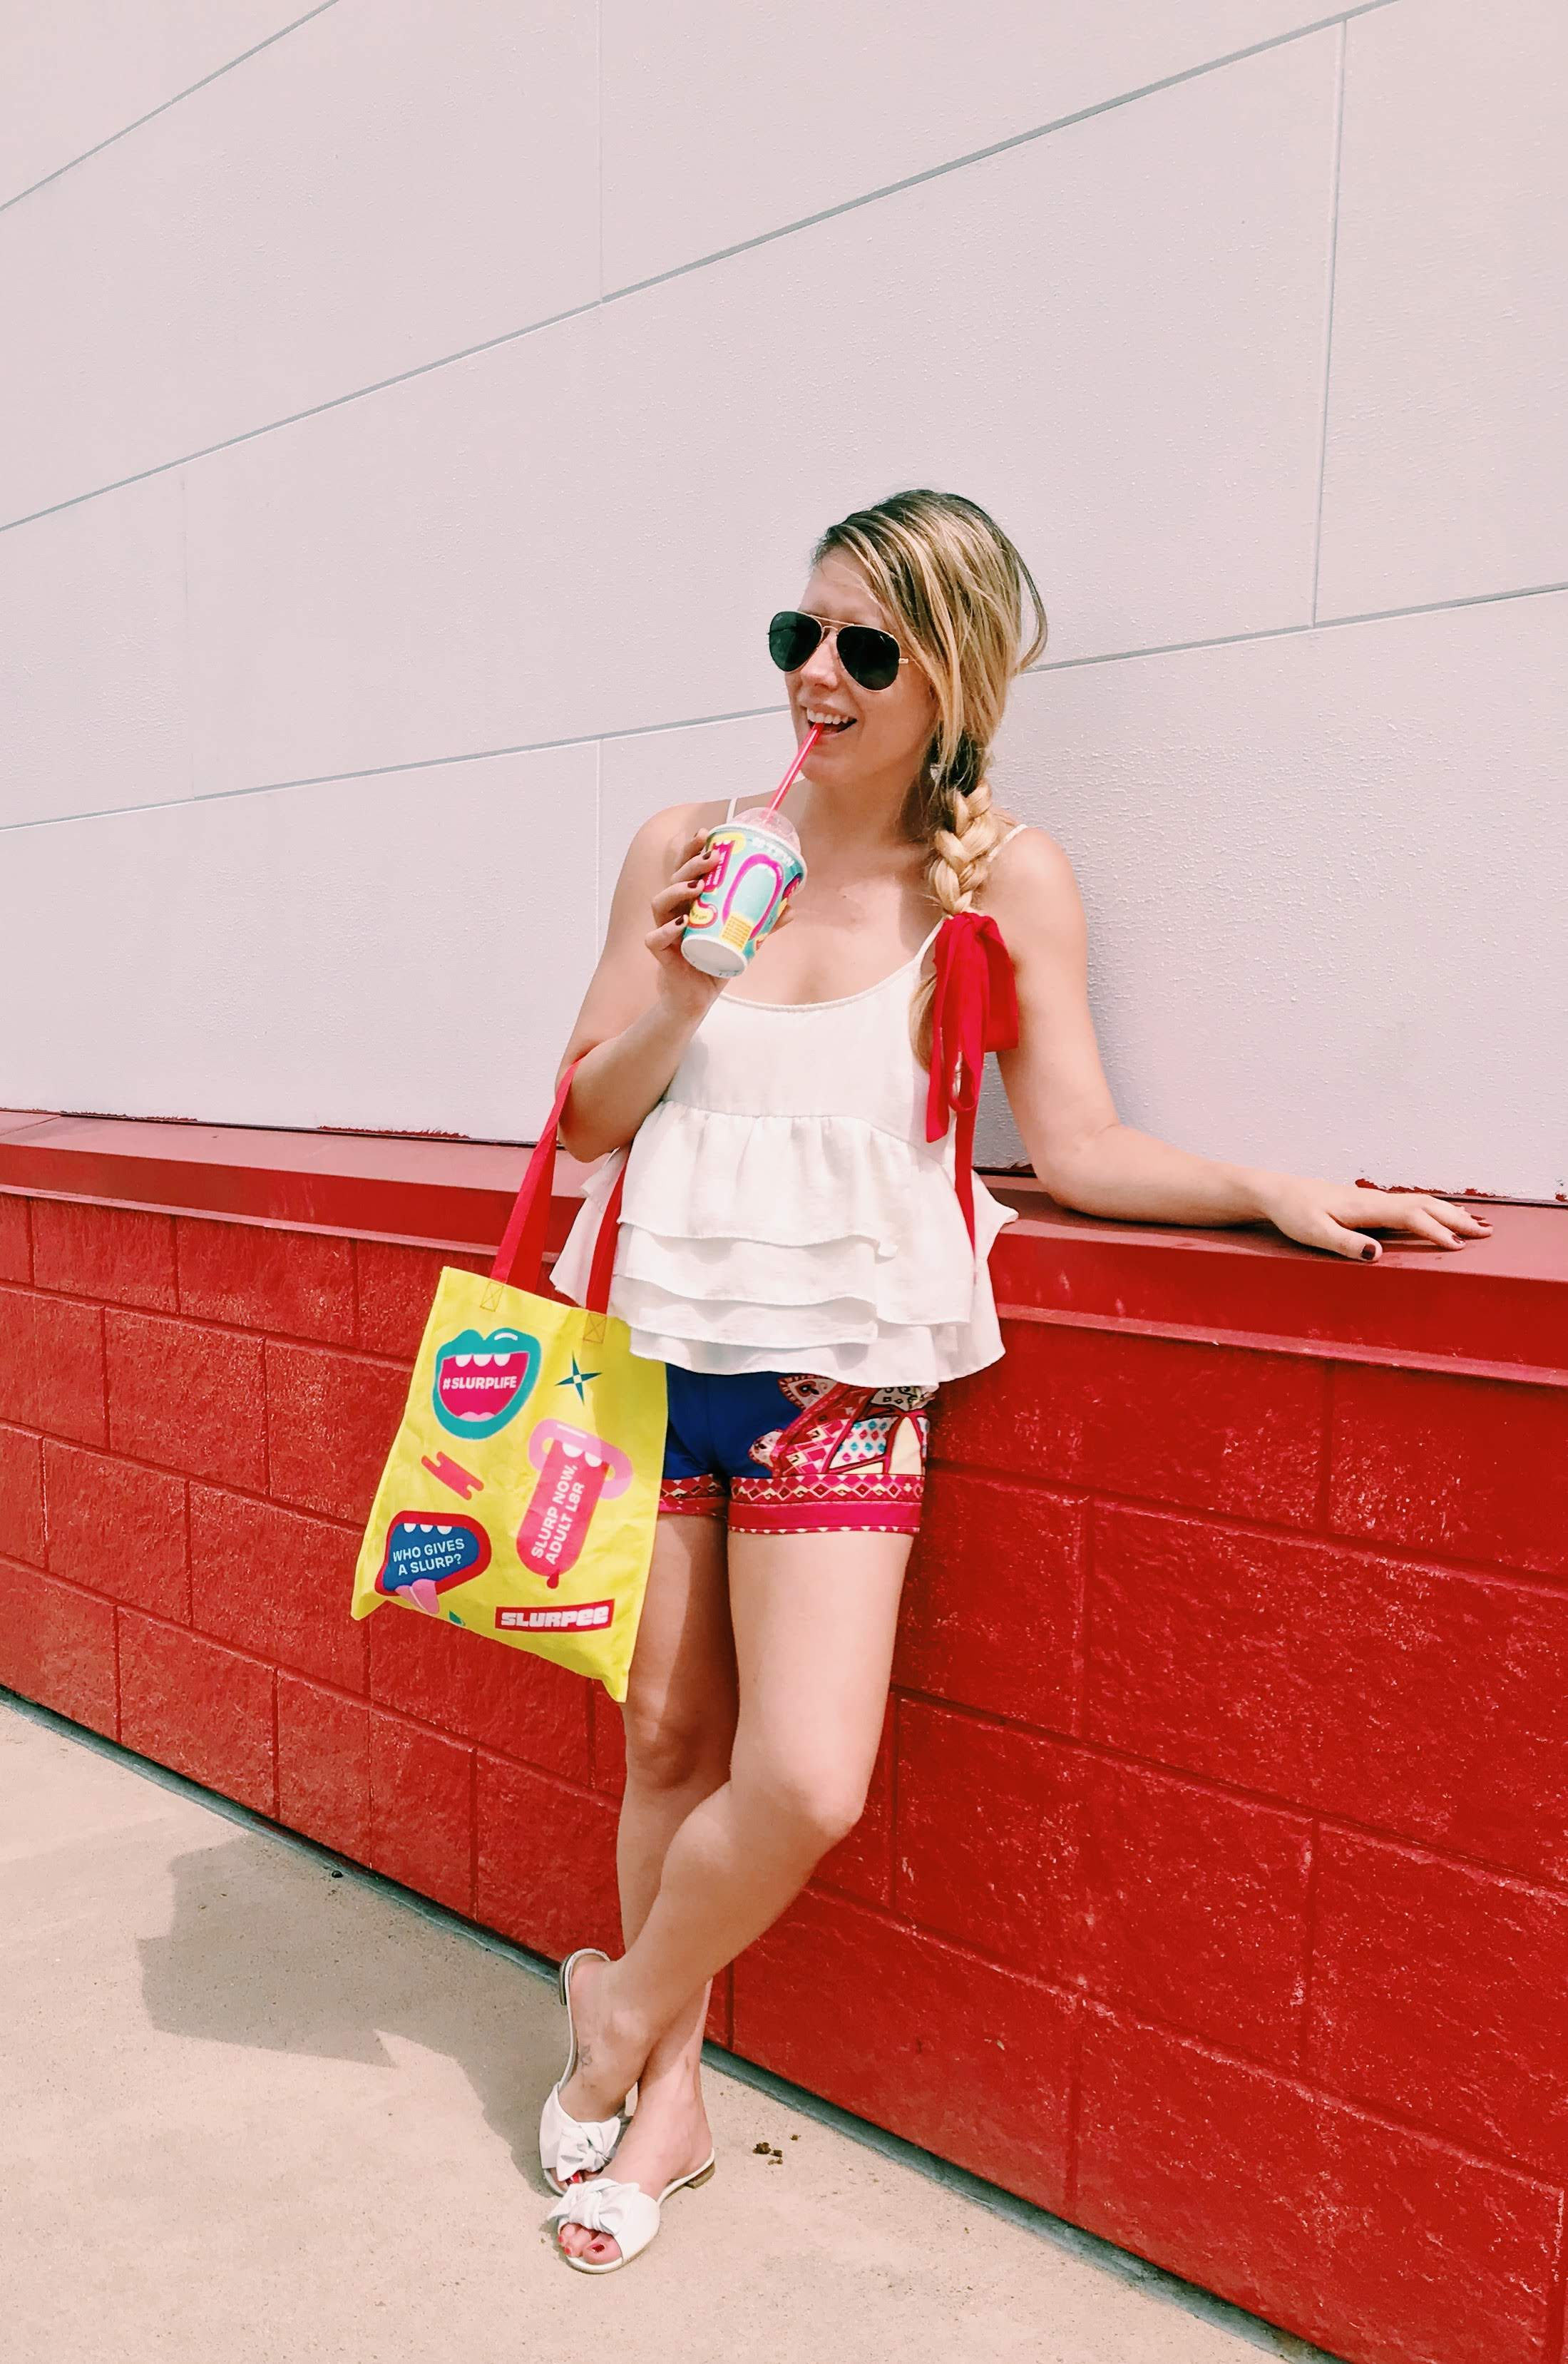 Three Heel Clicks - Free Slurpee Day with Stripes Stores (2).jpg